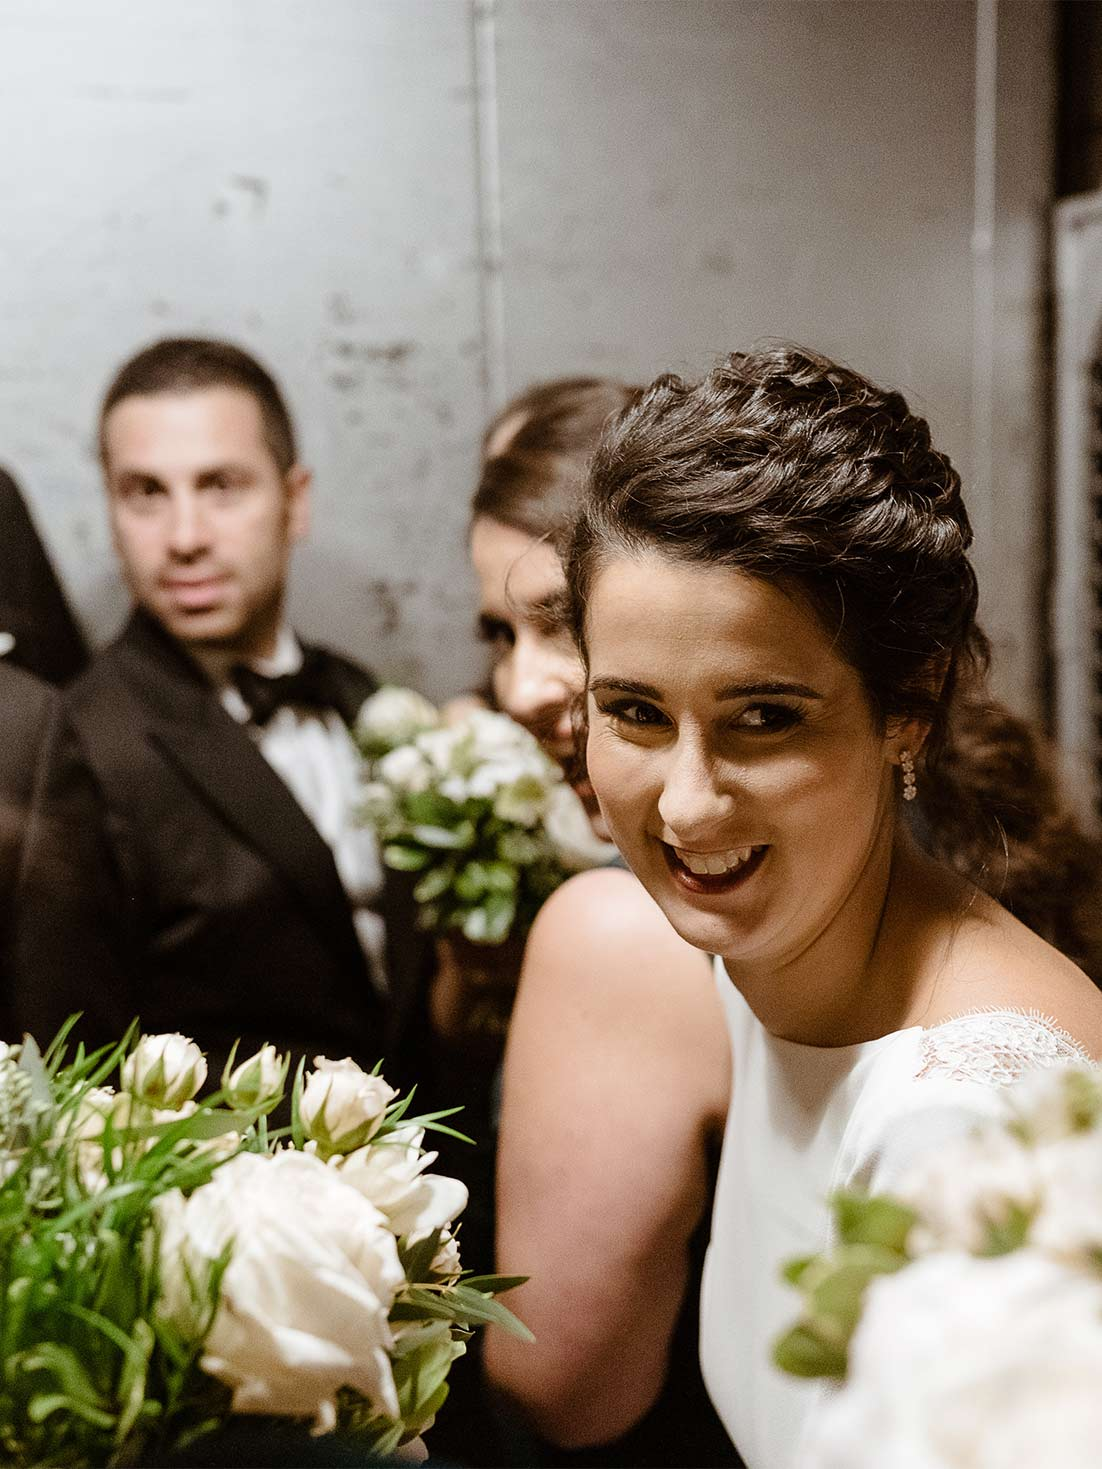 Bride smiles as bridal party rides in an industrial service freight to enter the westchester wedding venue